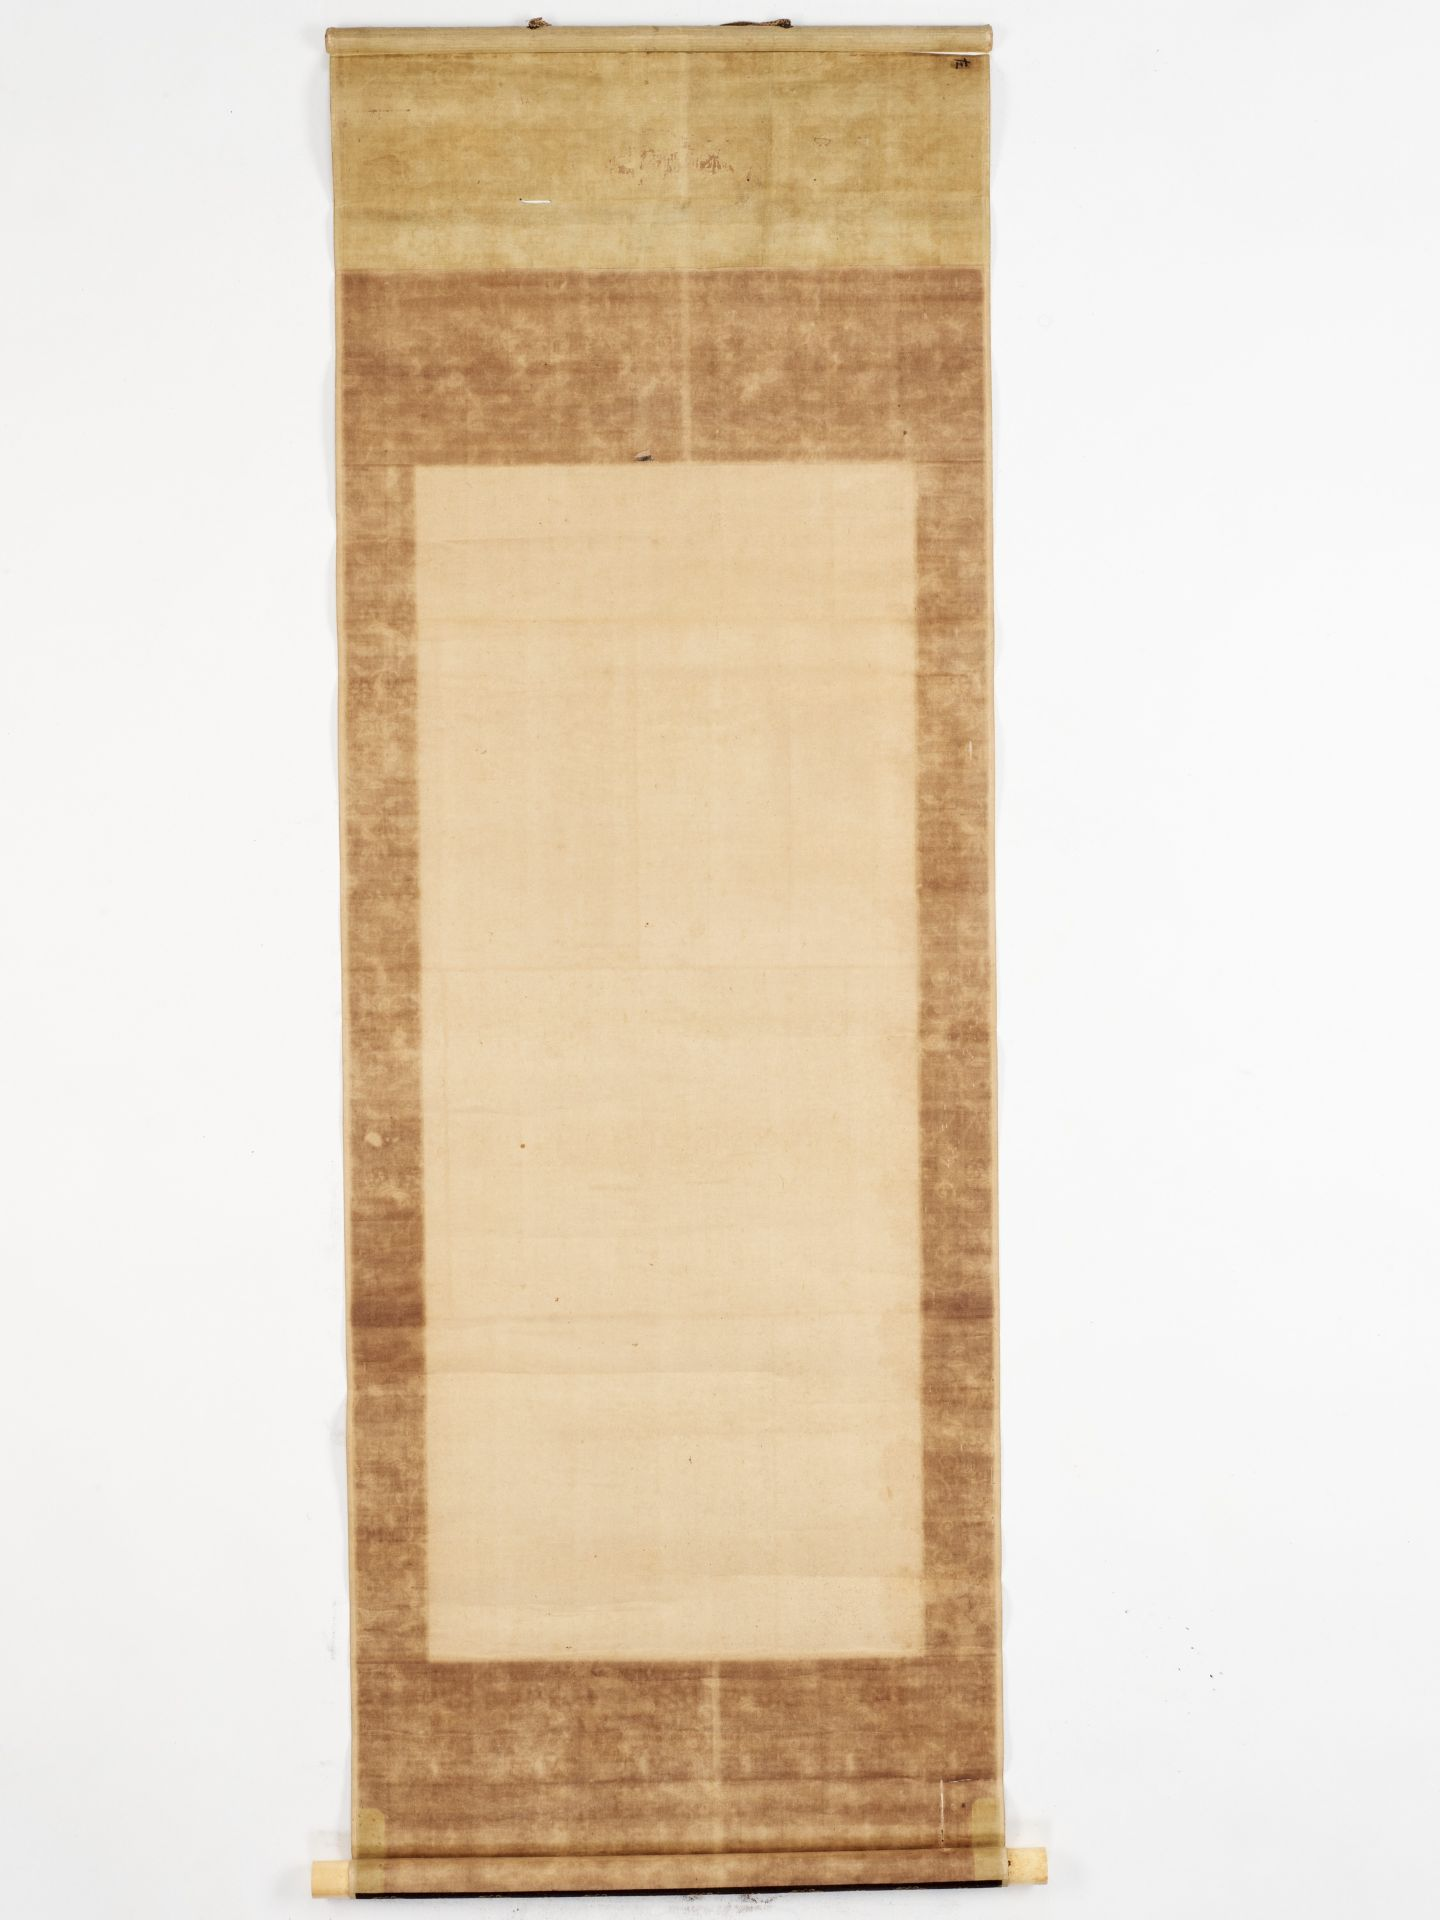 MARUYAMA OKYO: A SCROLL PAINTING OF A HILLY LANDSCAPE - Image 6 of 6